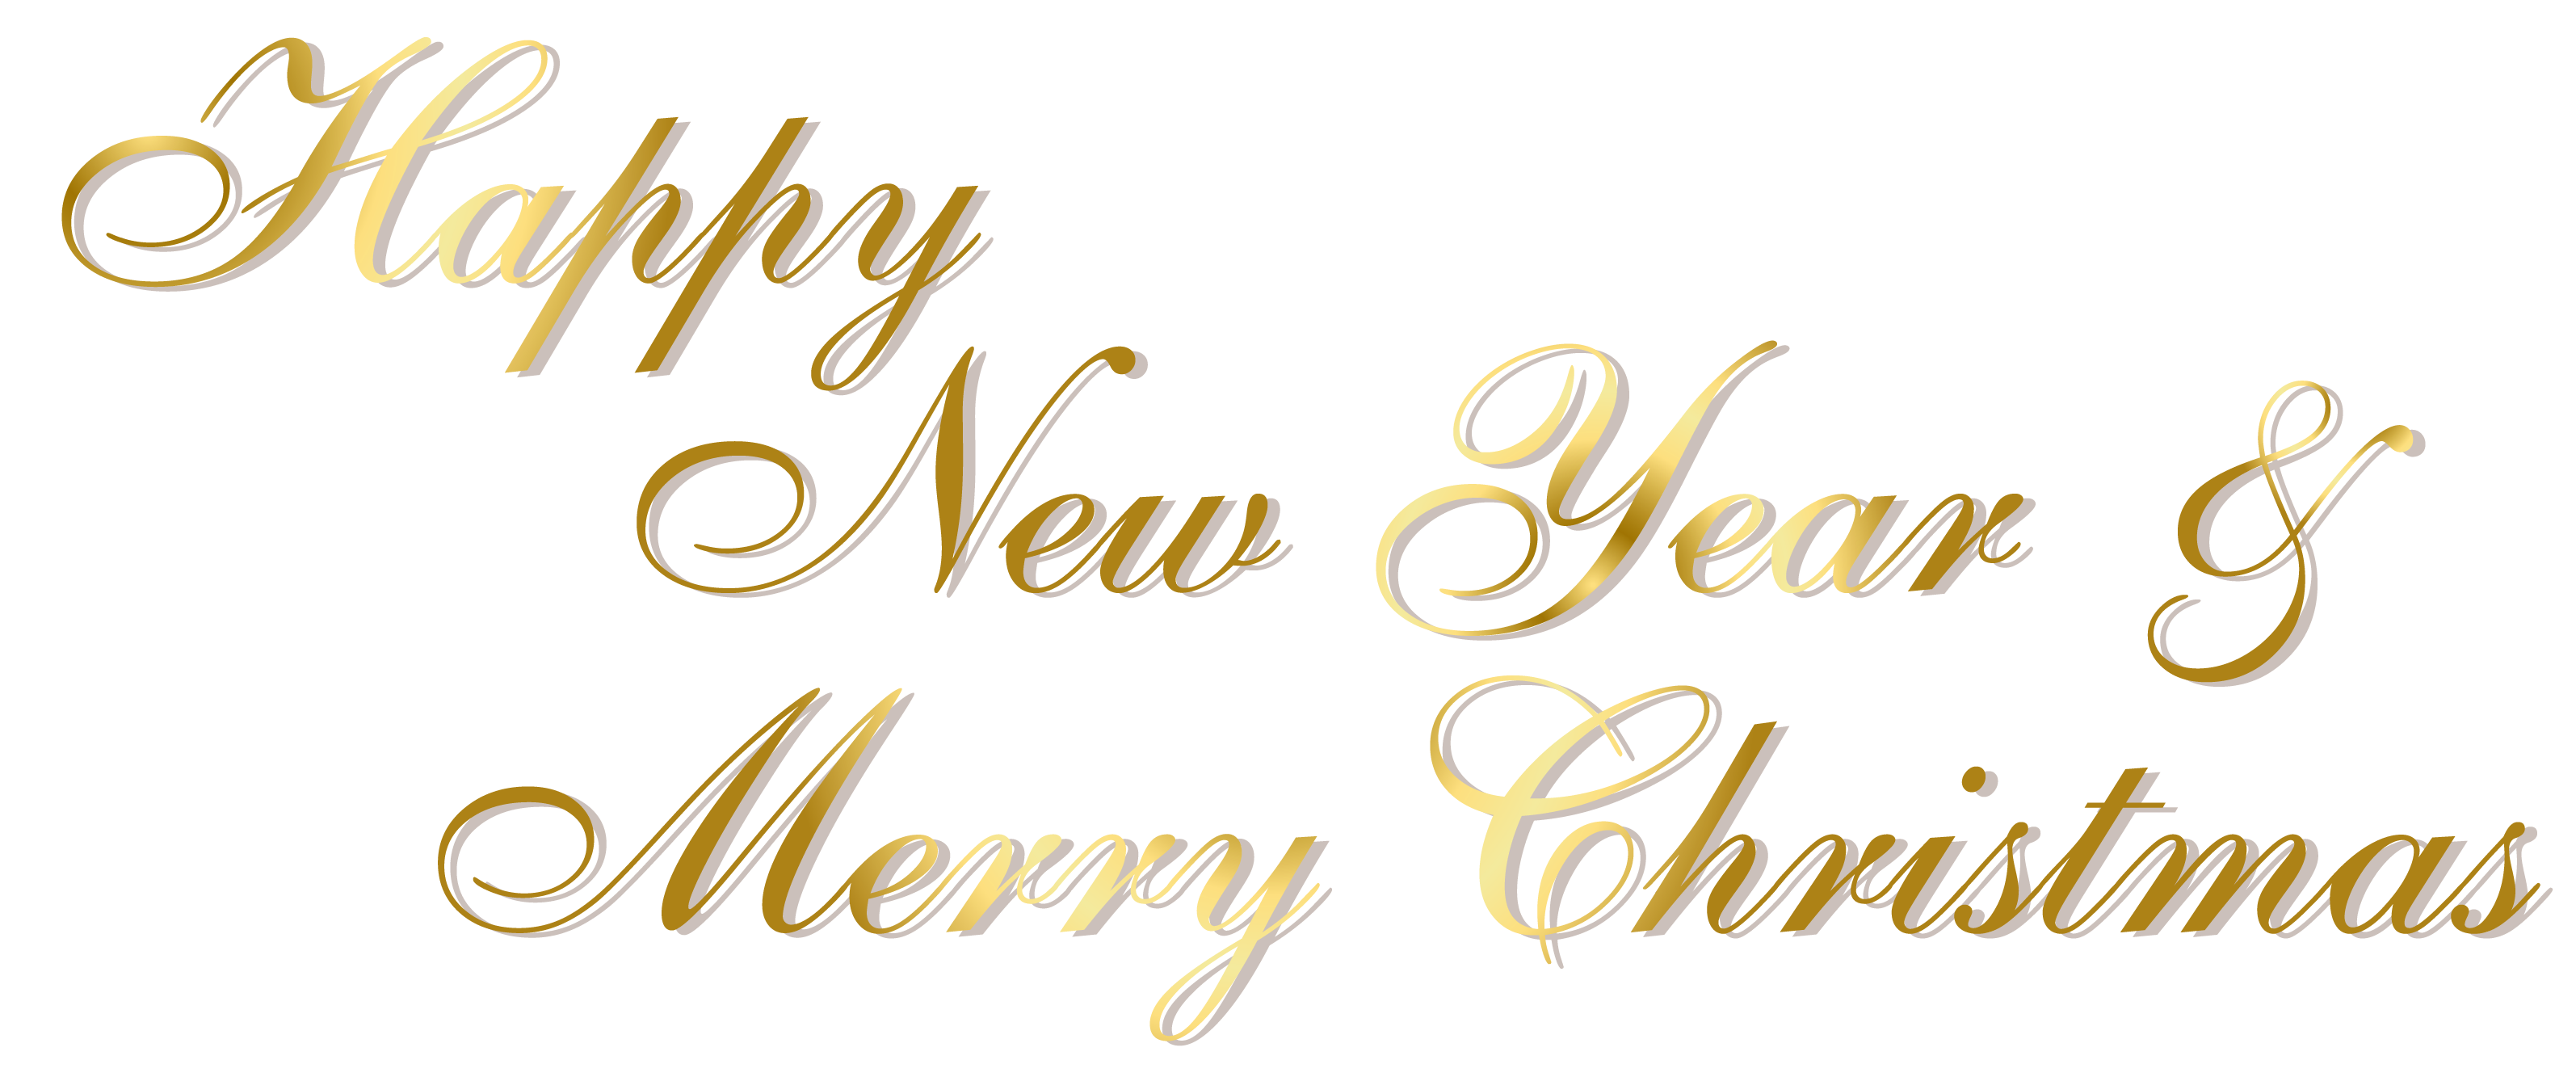 Christmas and new year clipart svg transparent stock Gold Happy New Year and Merry Christmas PNG Text | Gallery ... svg transparent stock